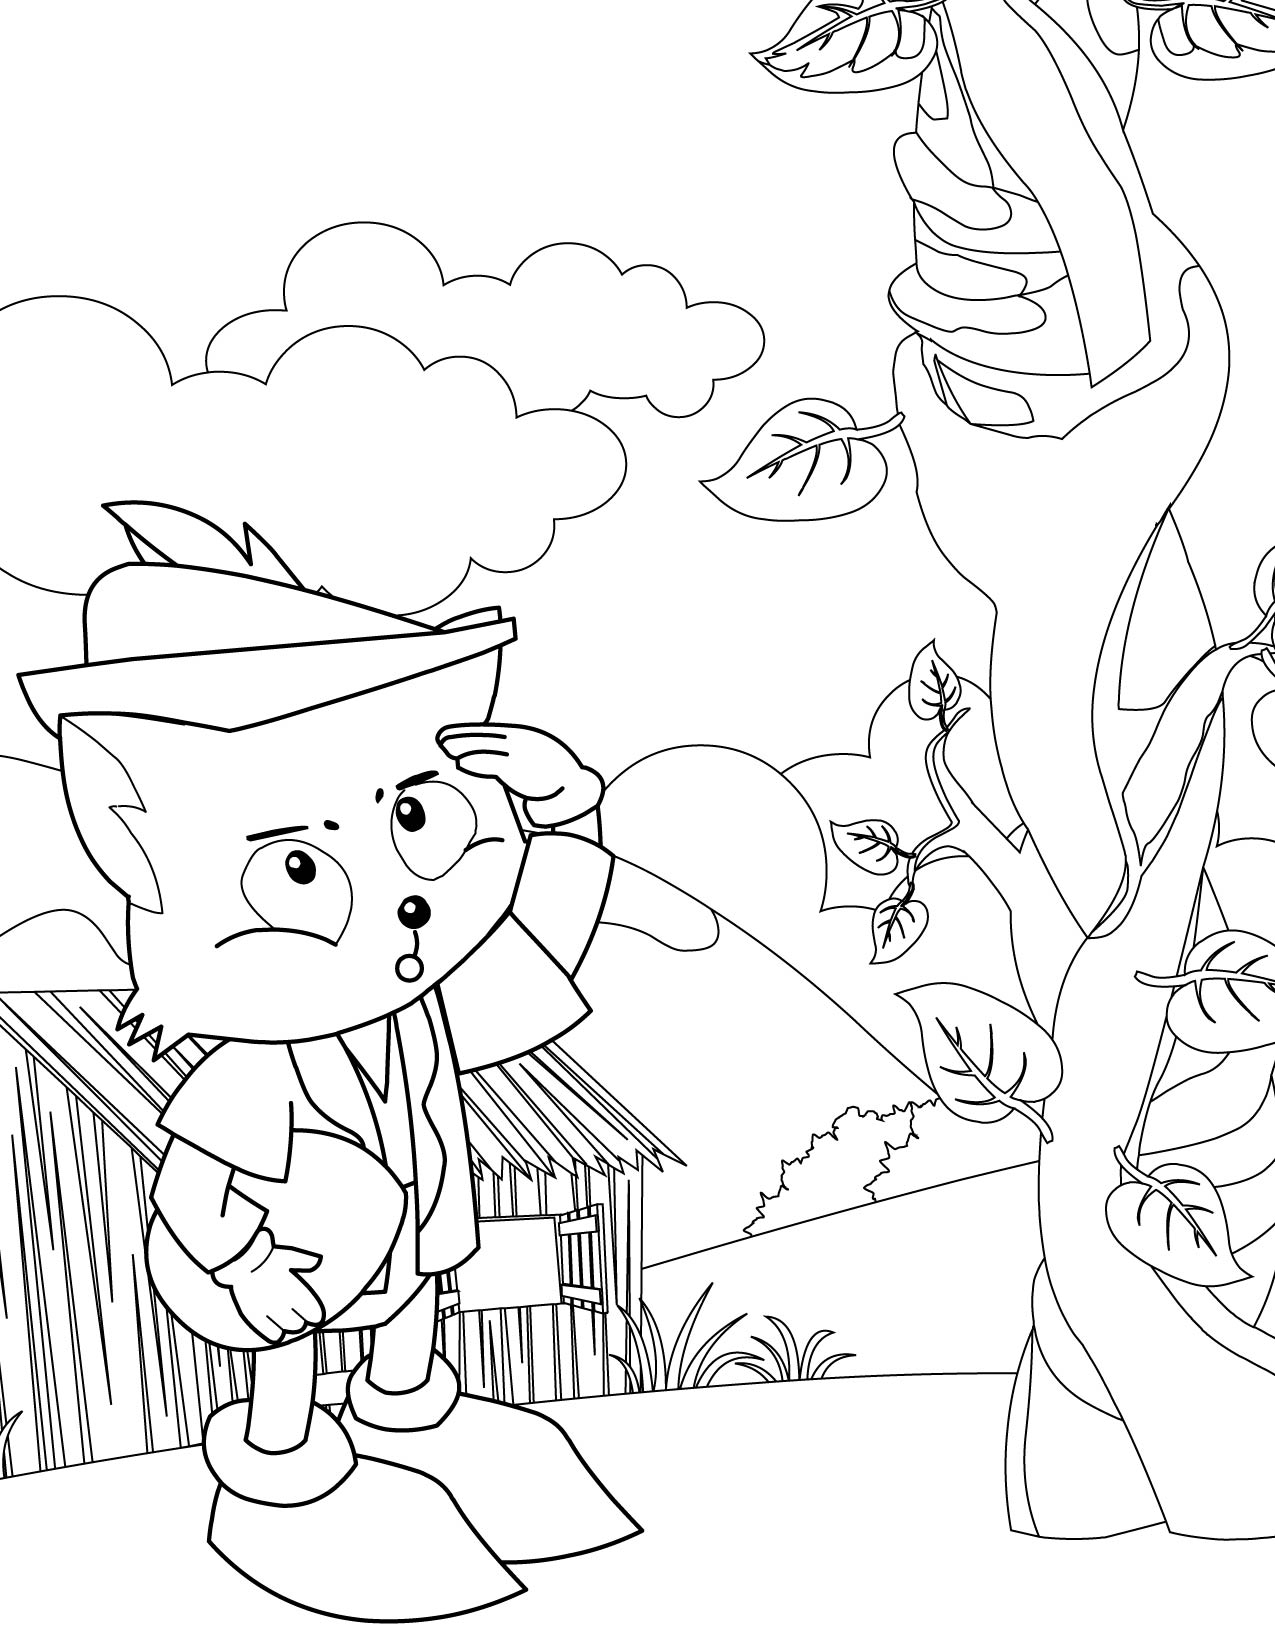 beanstalk coloring pages - photo#13